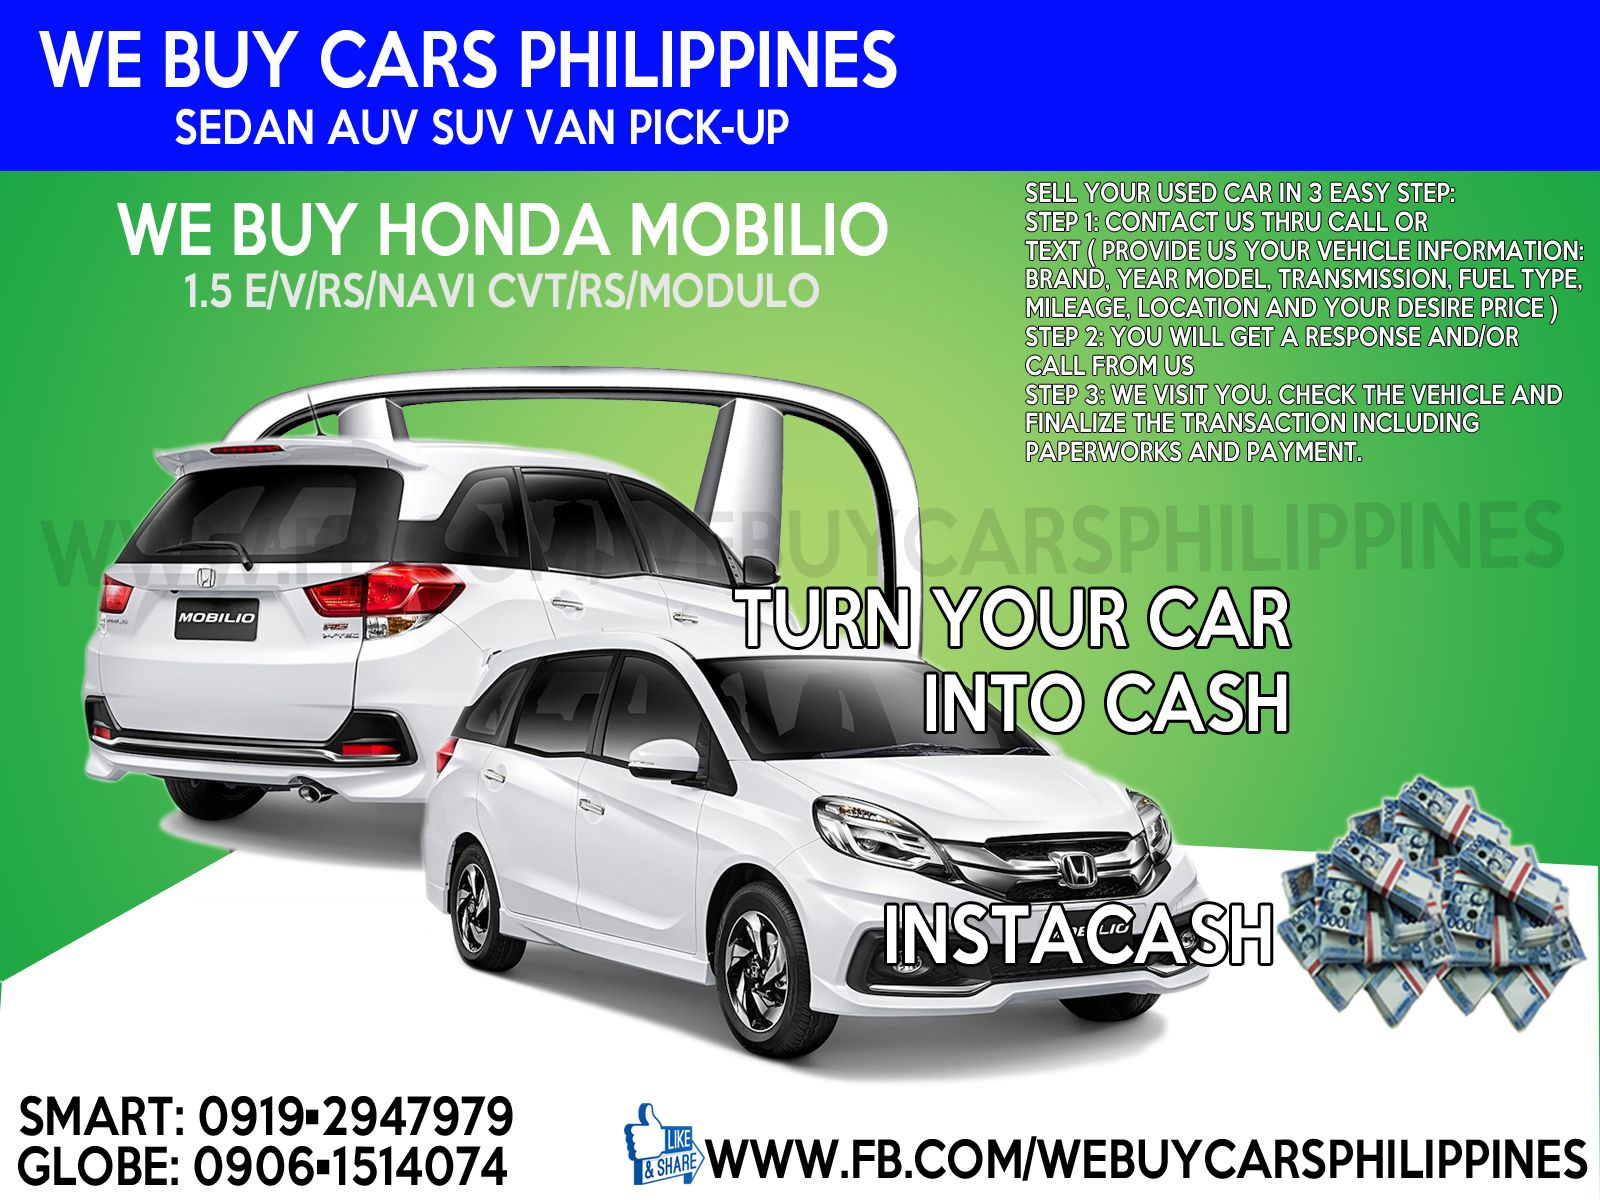 WE BUY USED HONDA MOBILIO PHILIPPINES Mobilio 1.5 E MT